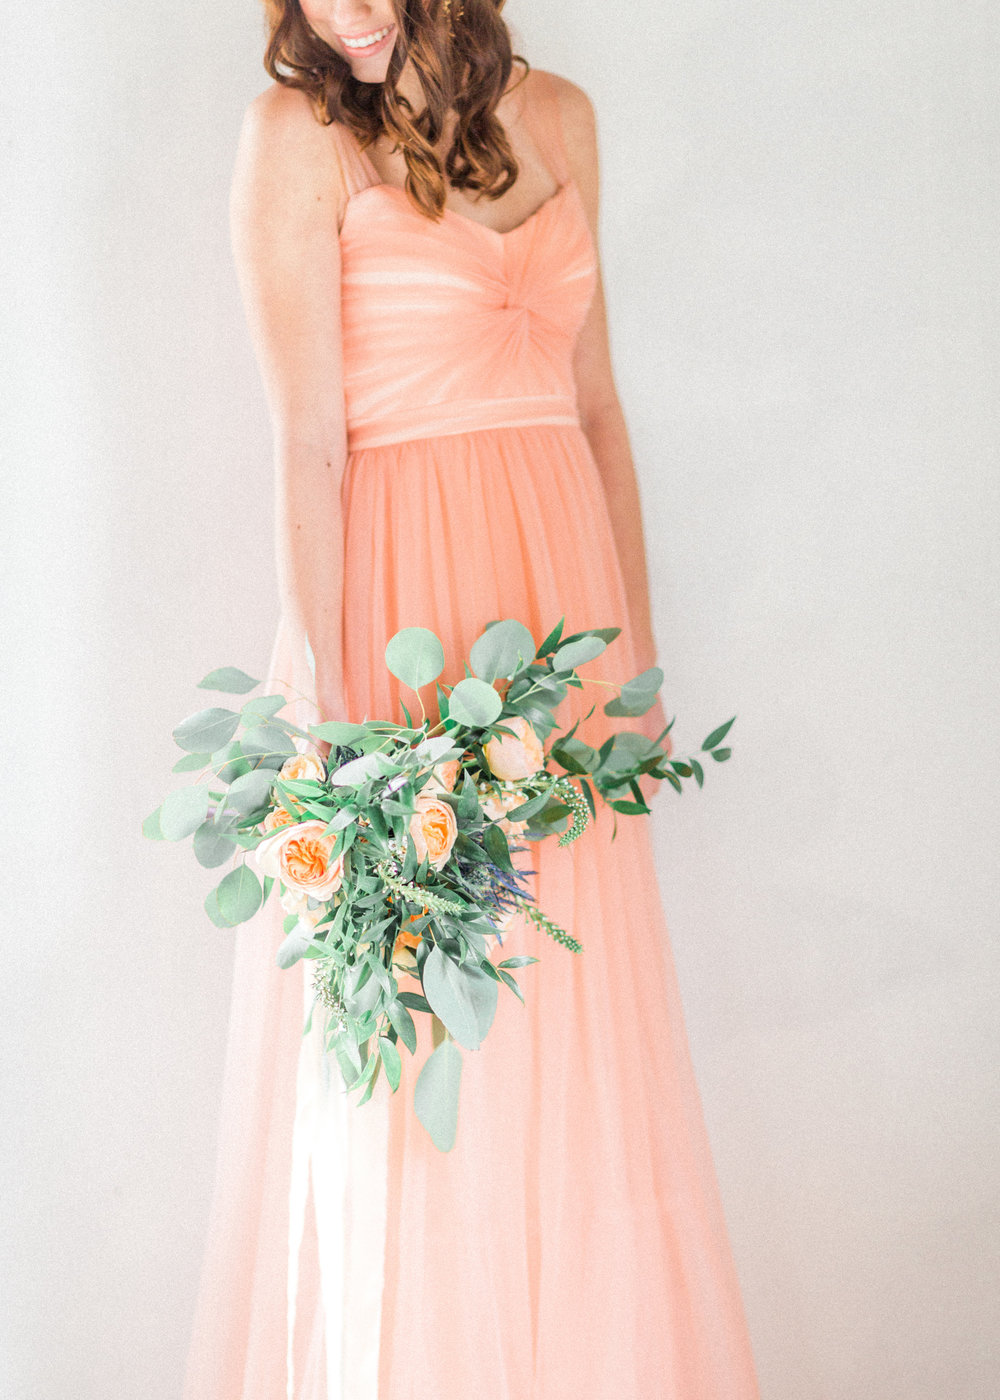 Peach Styled Shoot Editorial -0101.jpg